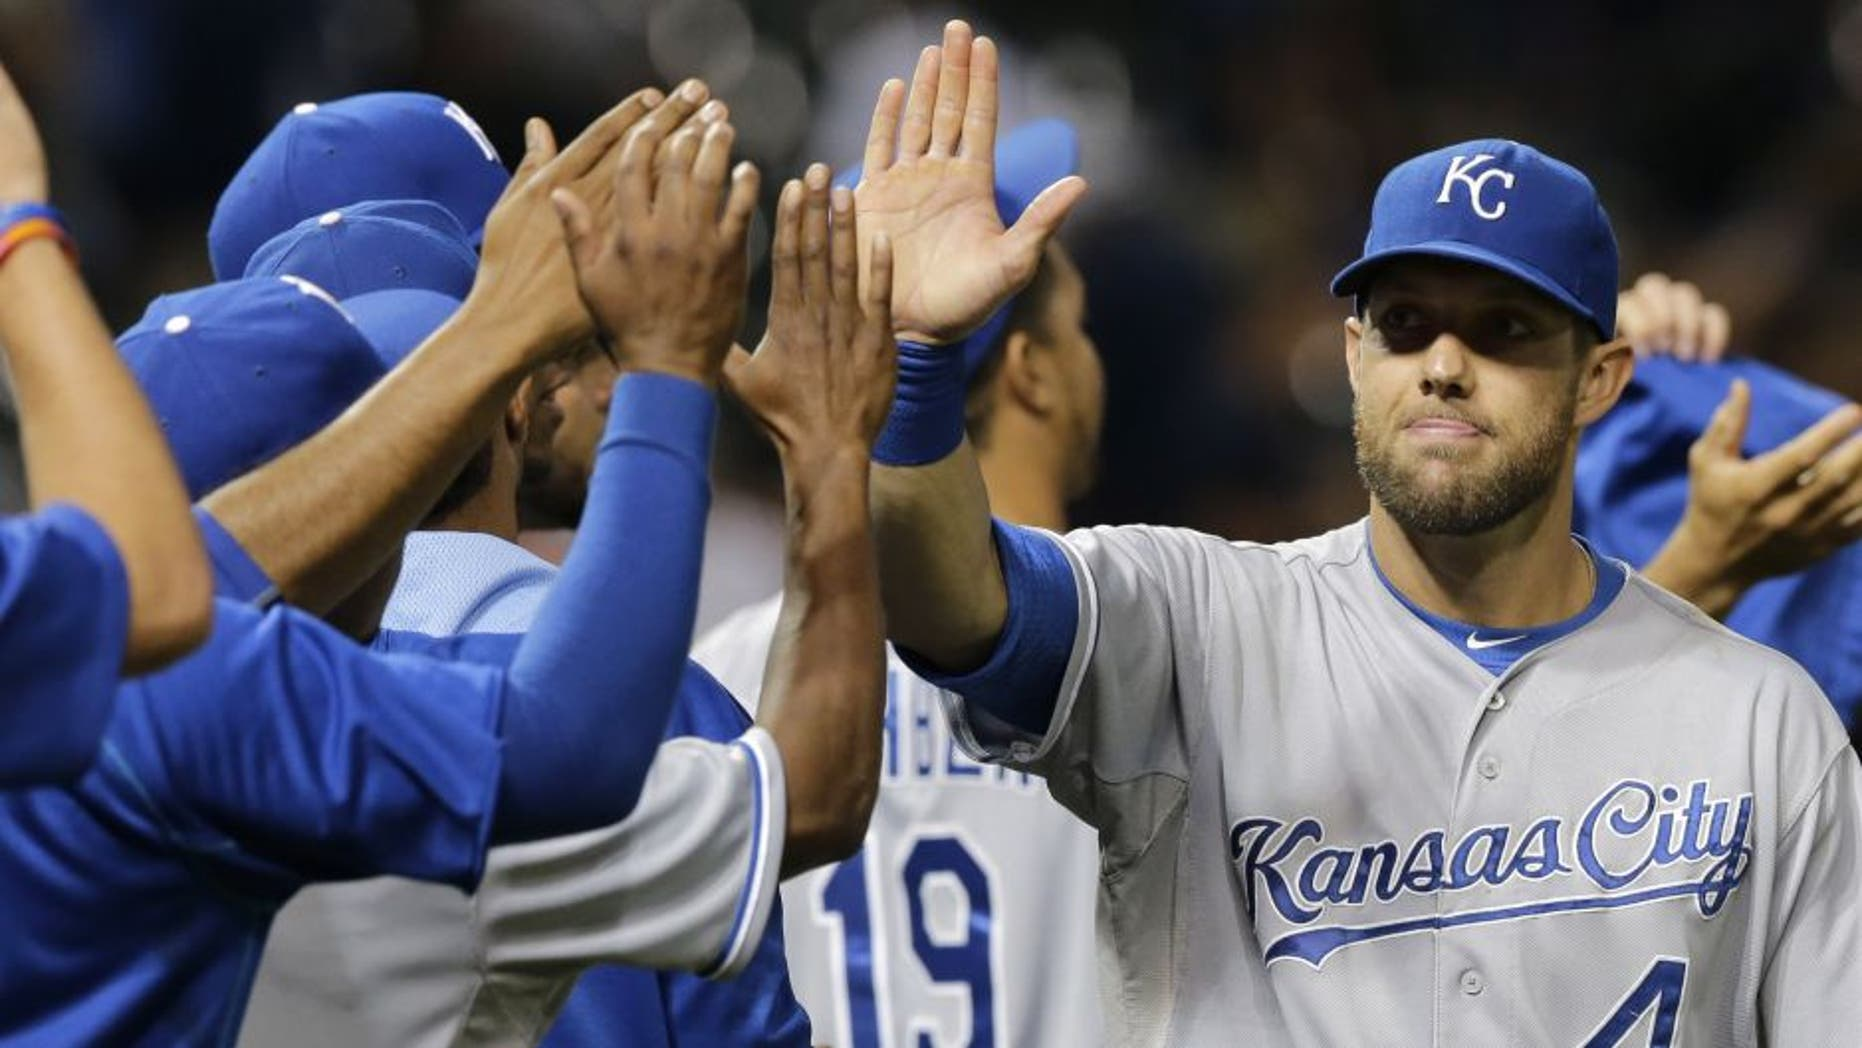 Kansas City Royals' Alex Gordon is congratulated after the Royals defeated the Cleveland Indians 2-0 on Tuesday night